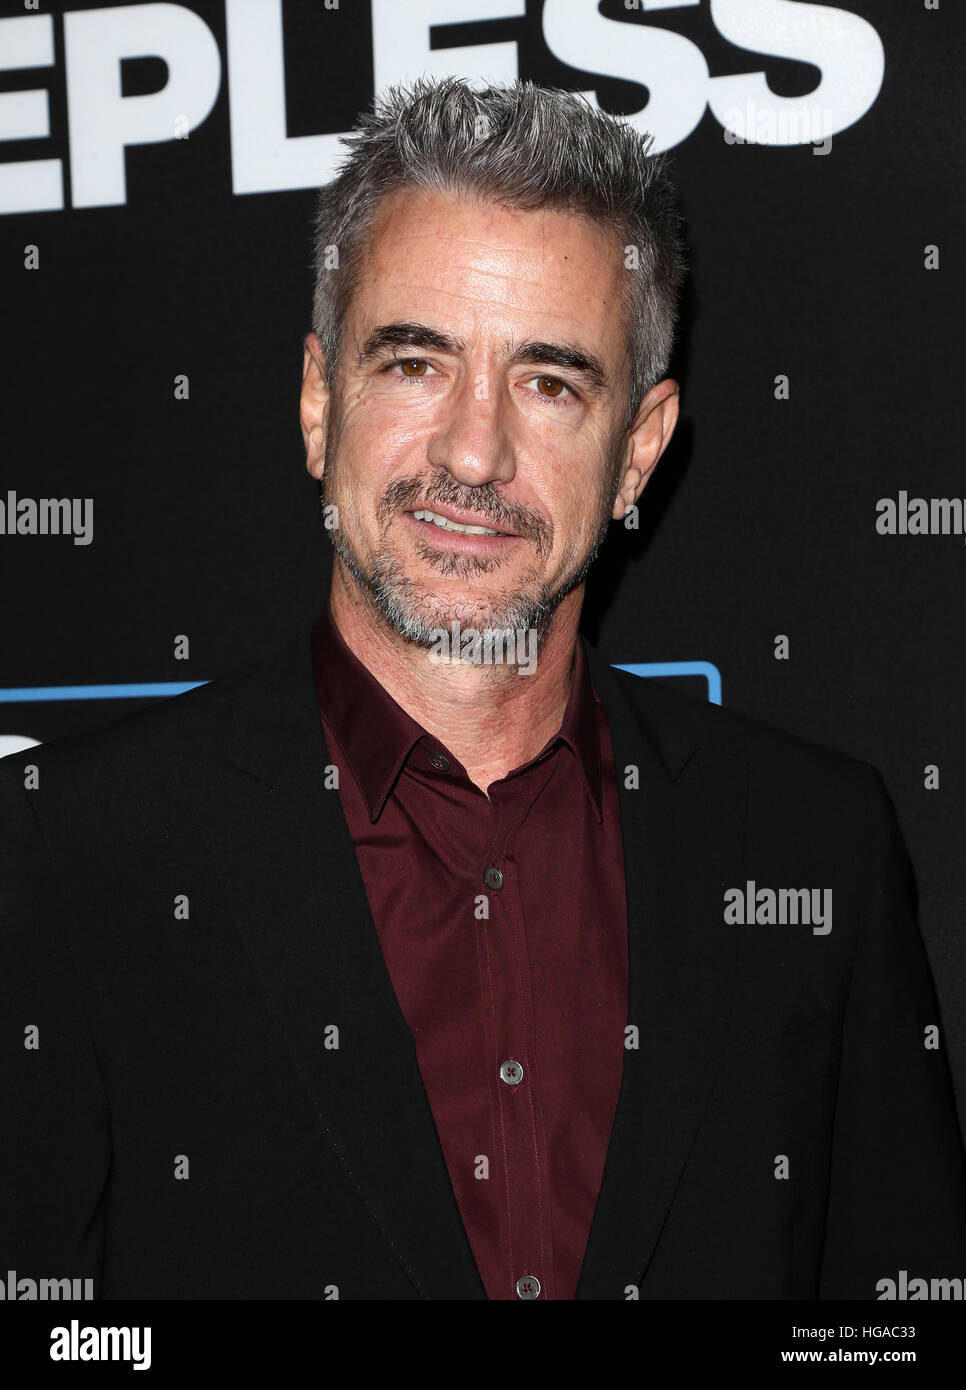 Los Angeles, CA - 05 janvier : Dermot Mulroney, pour Premiere d'Open Road Films' 'Sleepless', Photo Stock